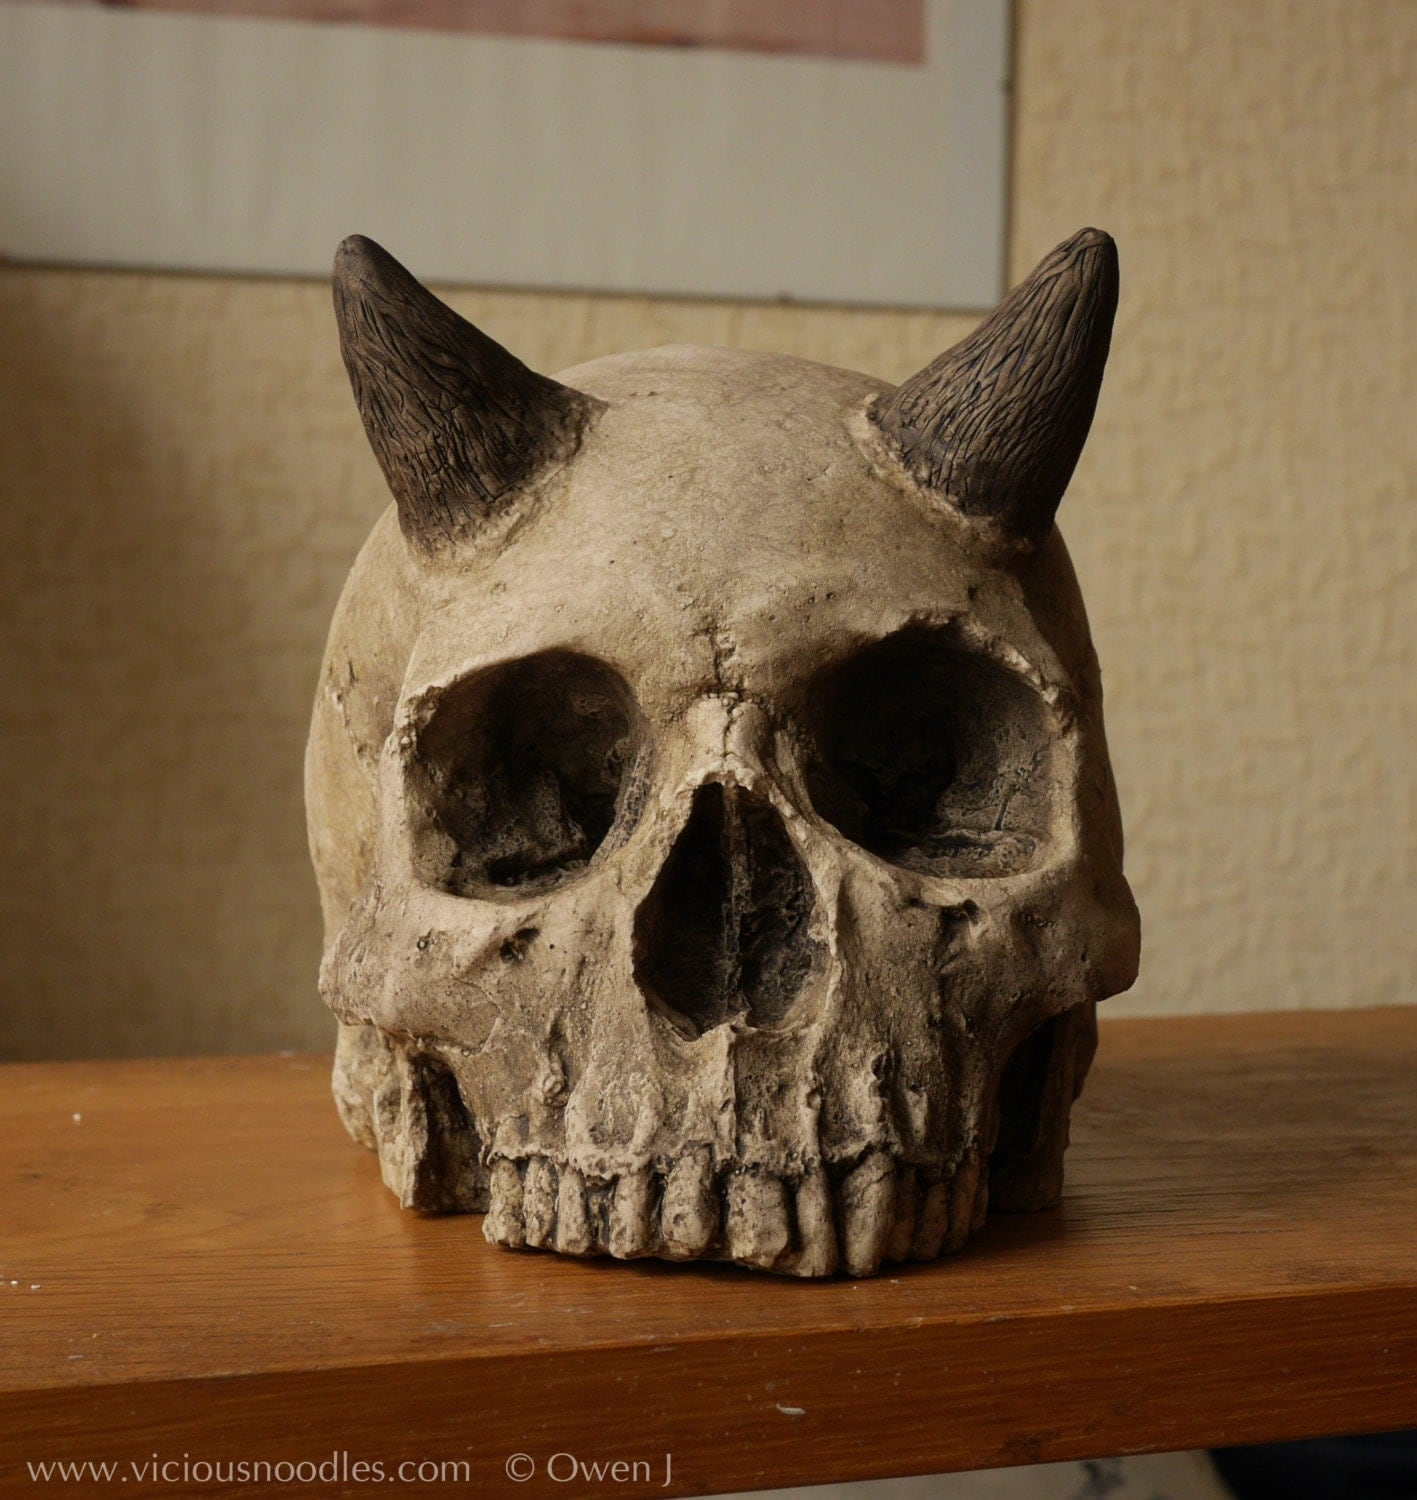 Human Skulls With Horns Found Pictures to Pin on Pinterest ... Human With Horns